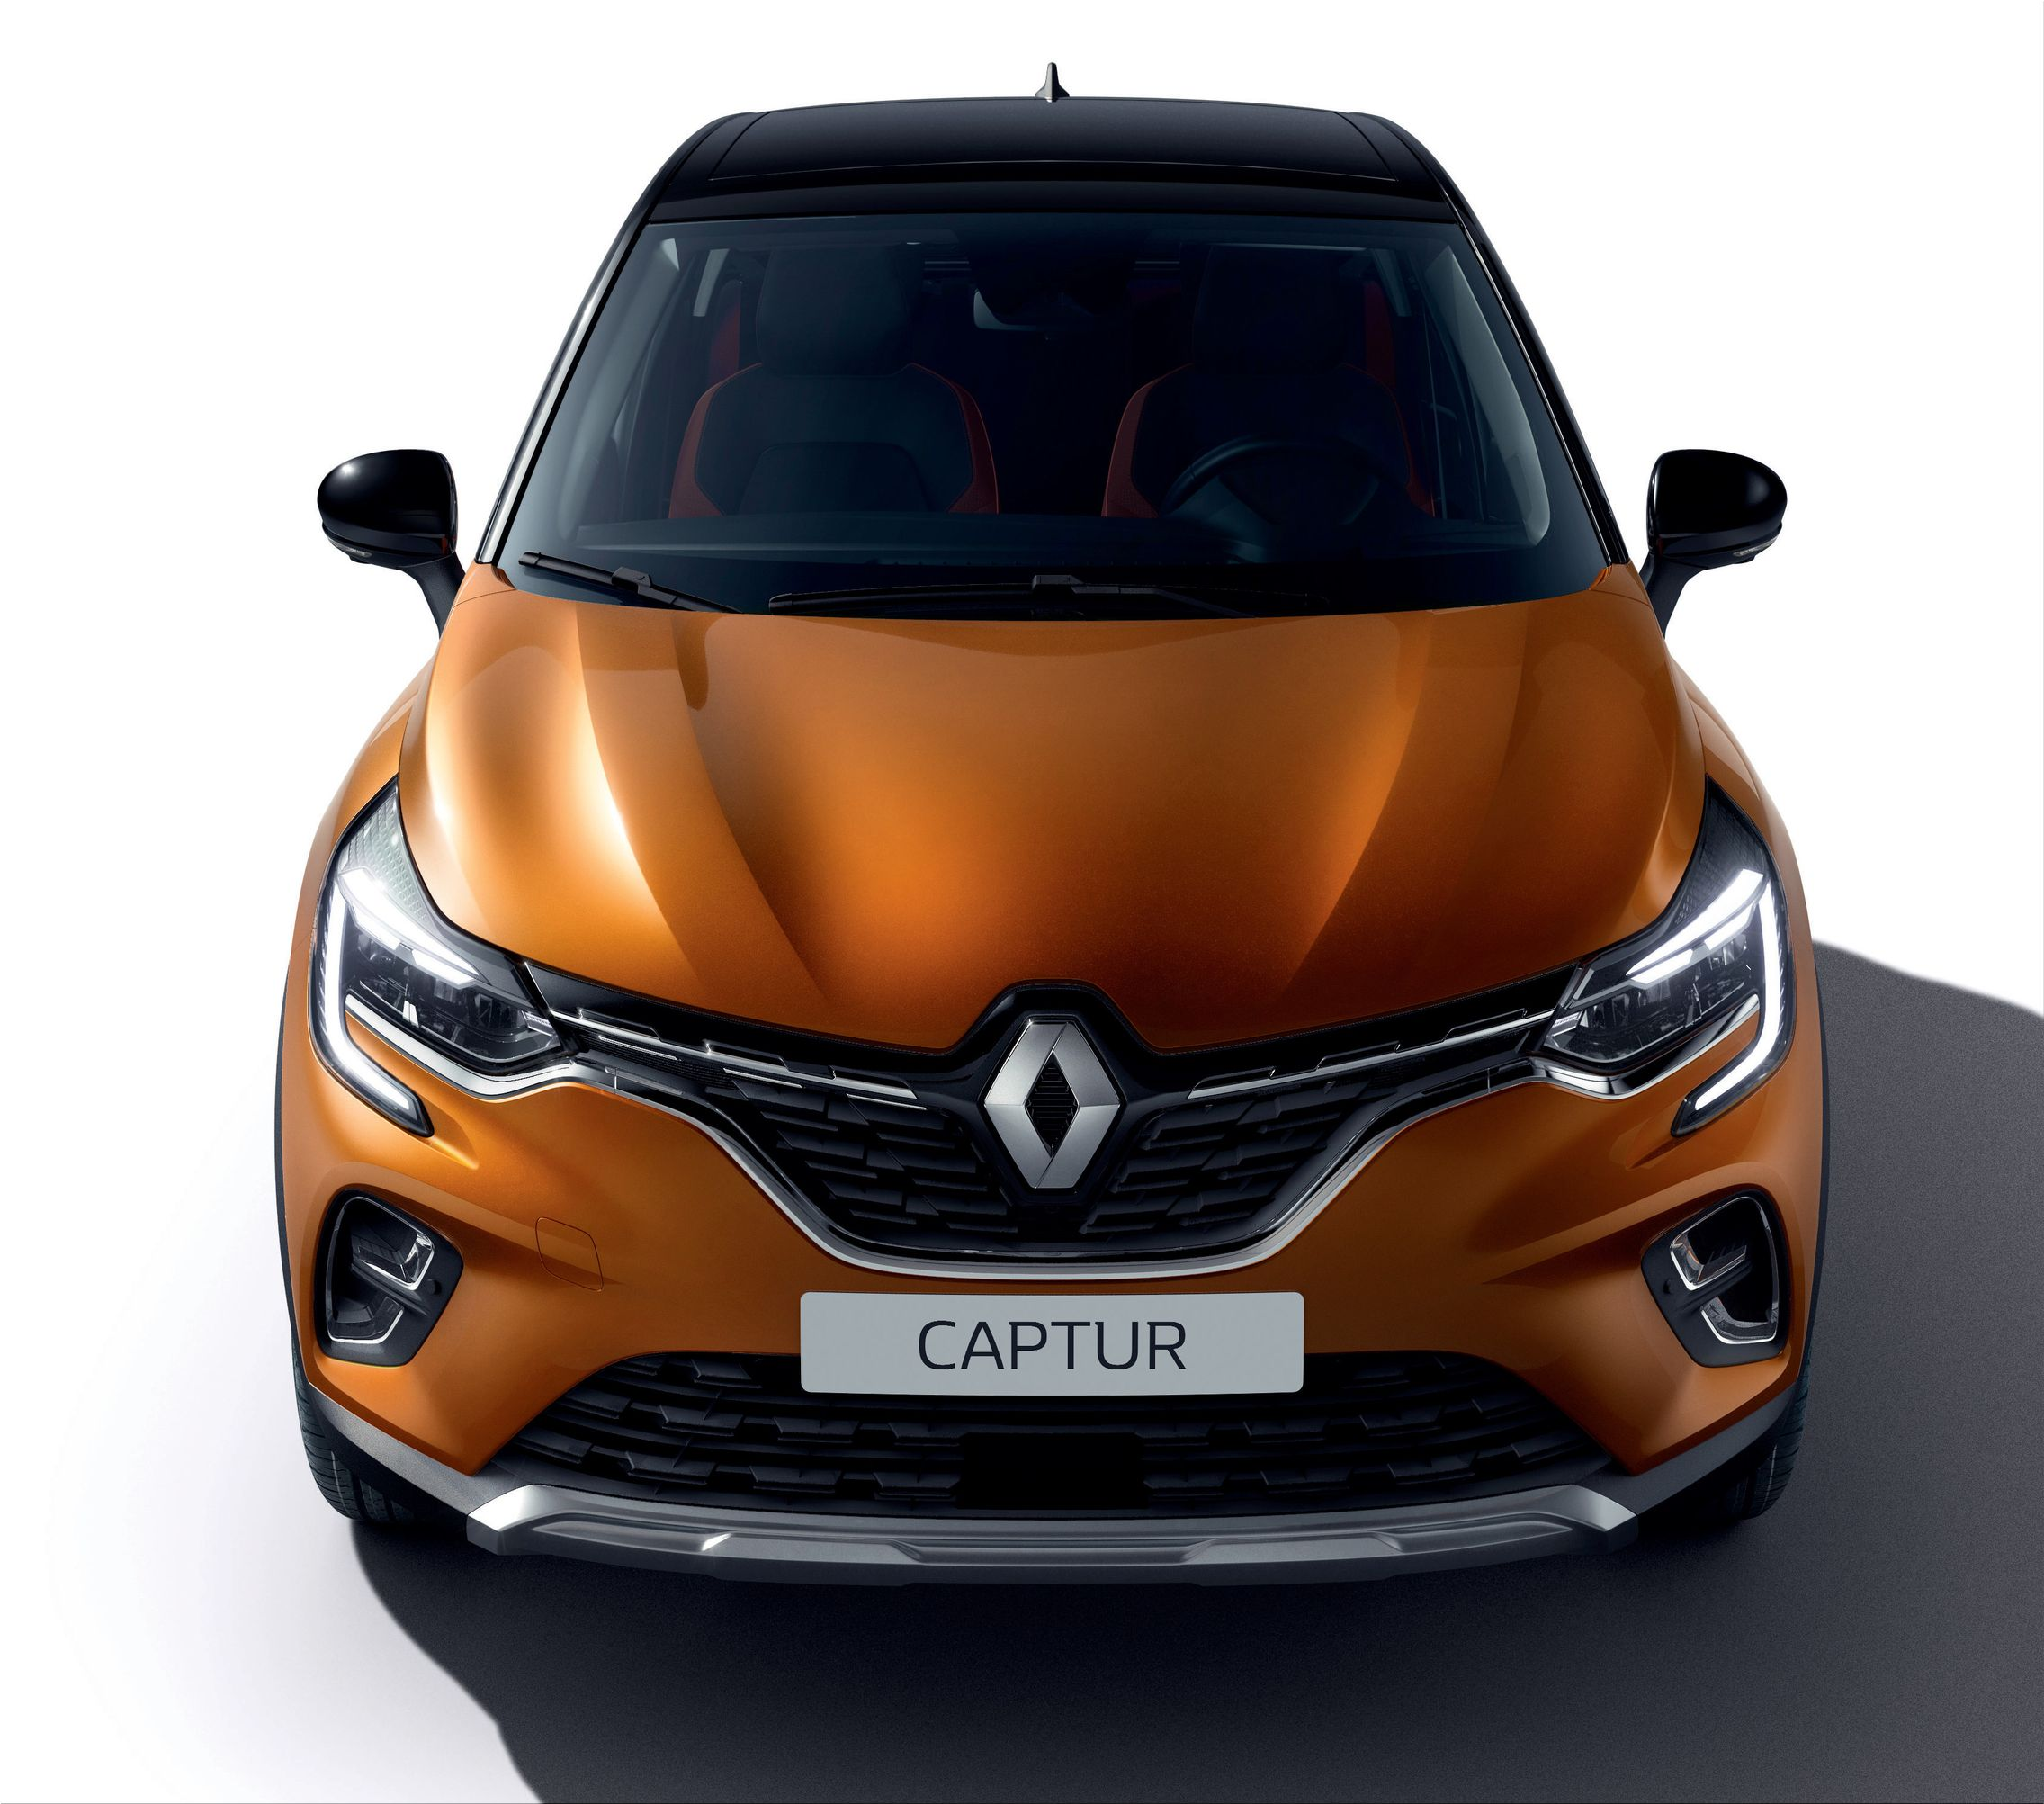 Renault Captur SUV And Plug-in Hybrid, 45 Km With Zero